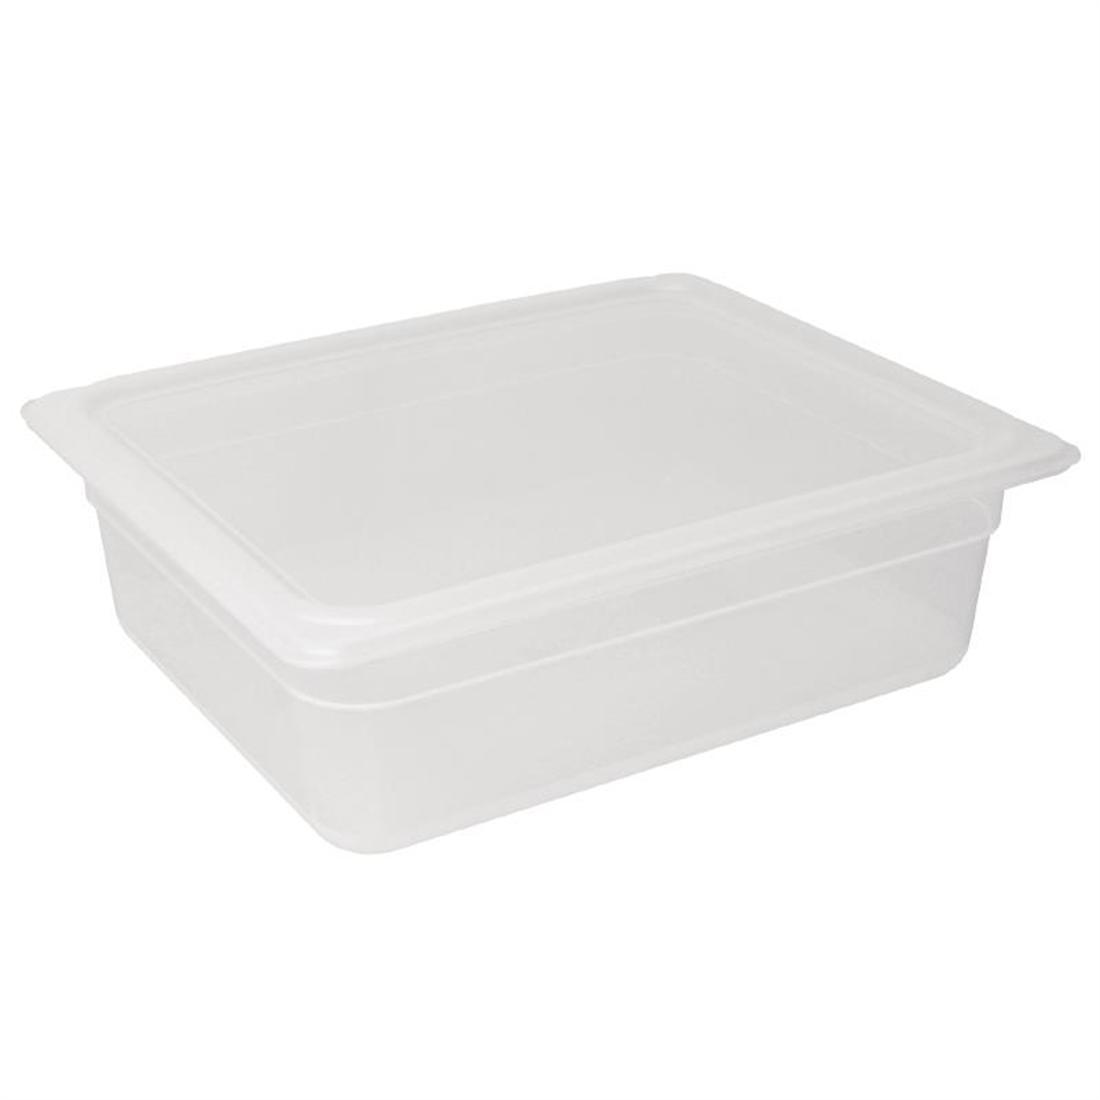 Vogue Polypropylene 1/2 Gastronorm Container with Lid 200mm - Pack of 4 - GJ517